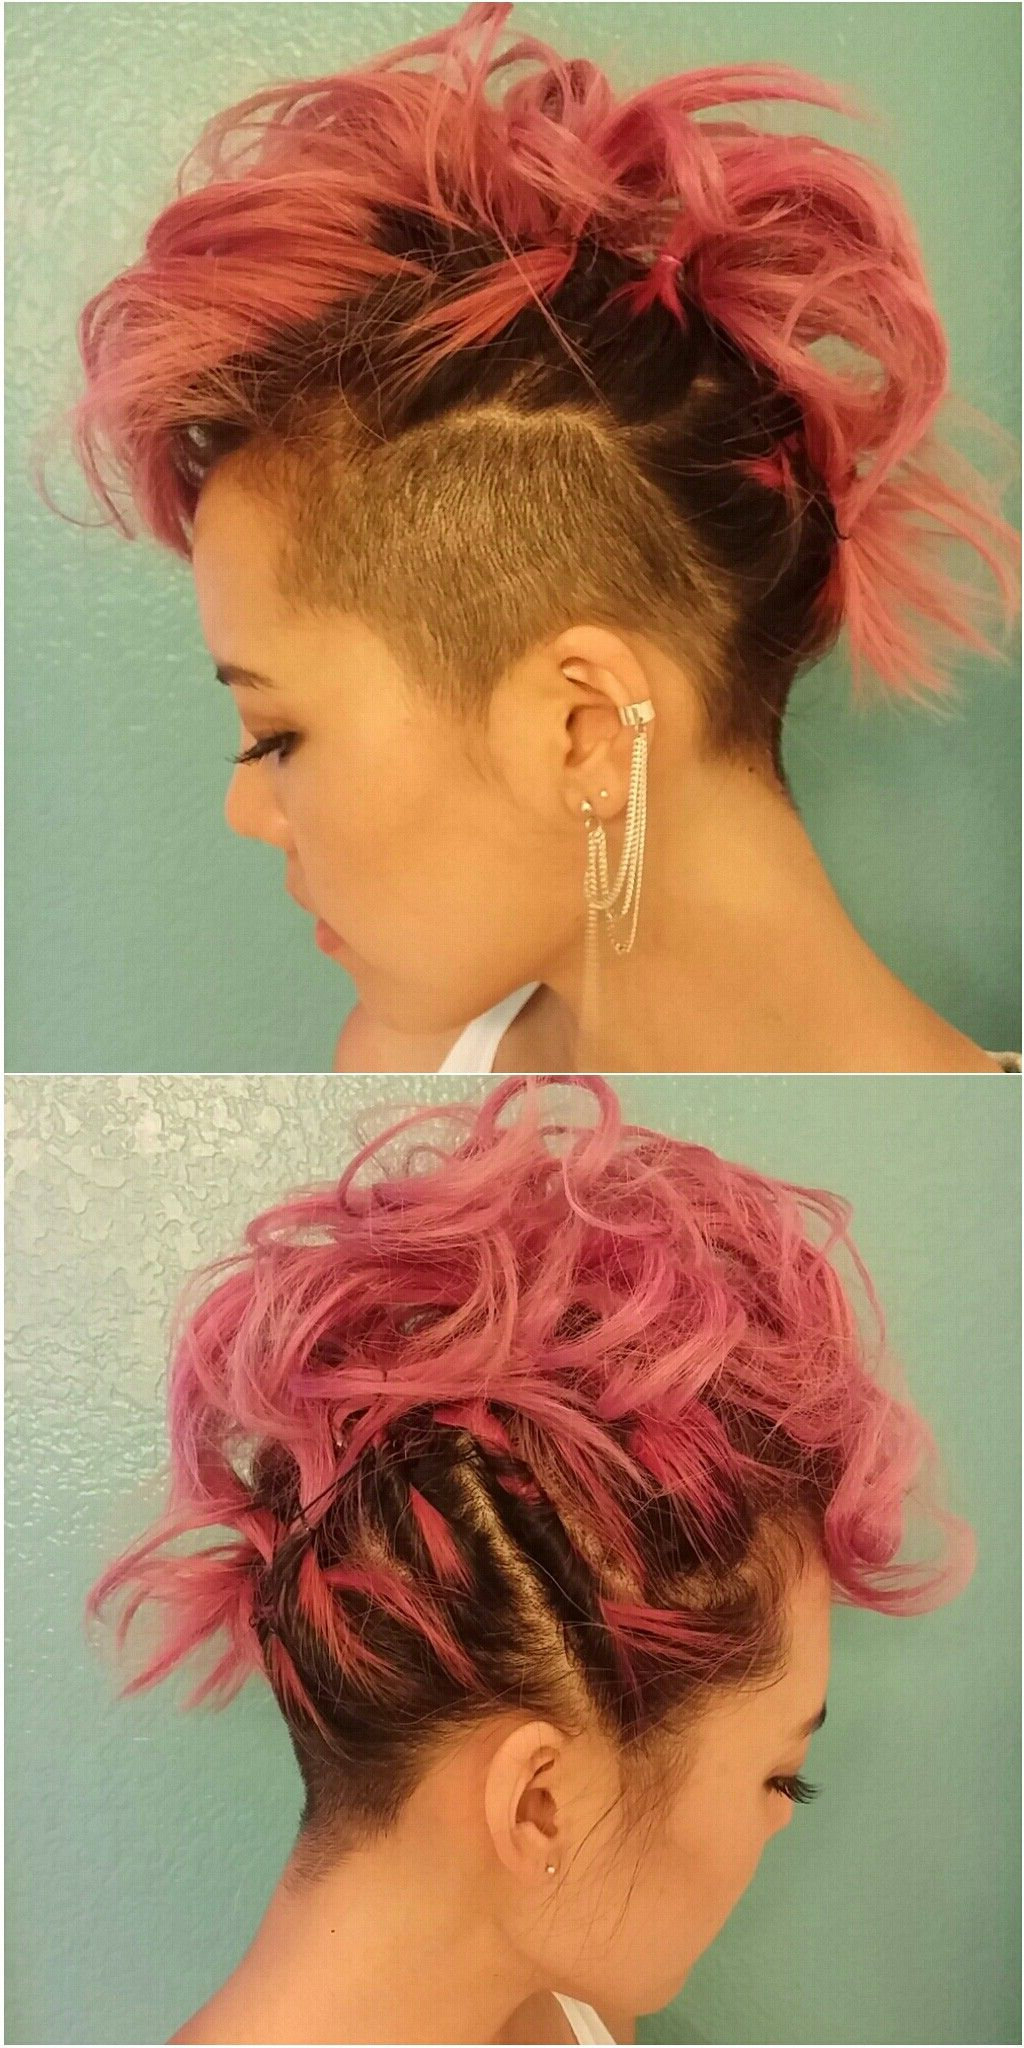 Pink Curled Mohawk/faux Hawk With Shaved Side And Undercut (View 16 of 20)